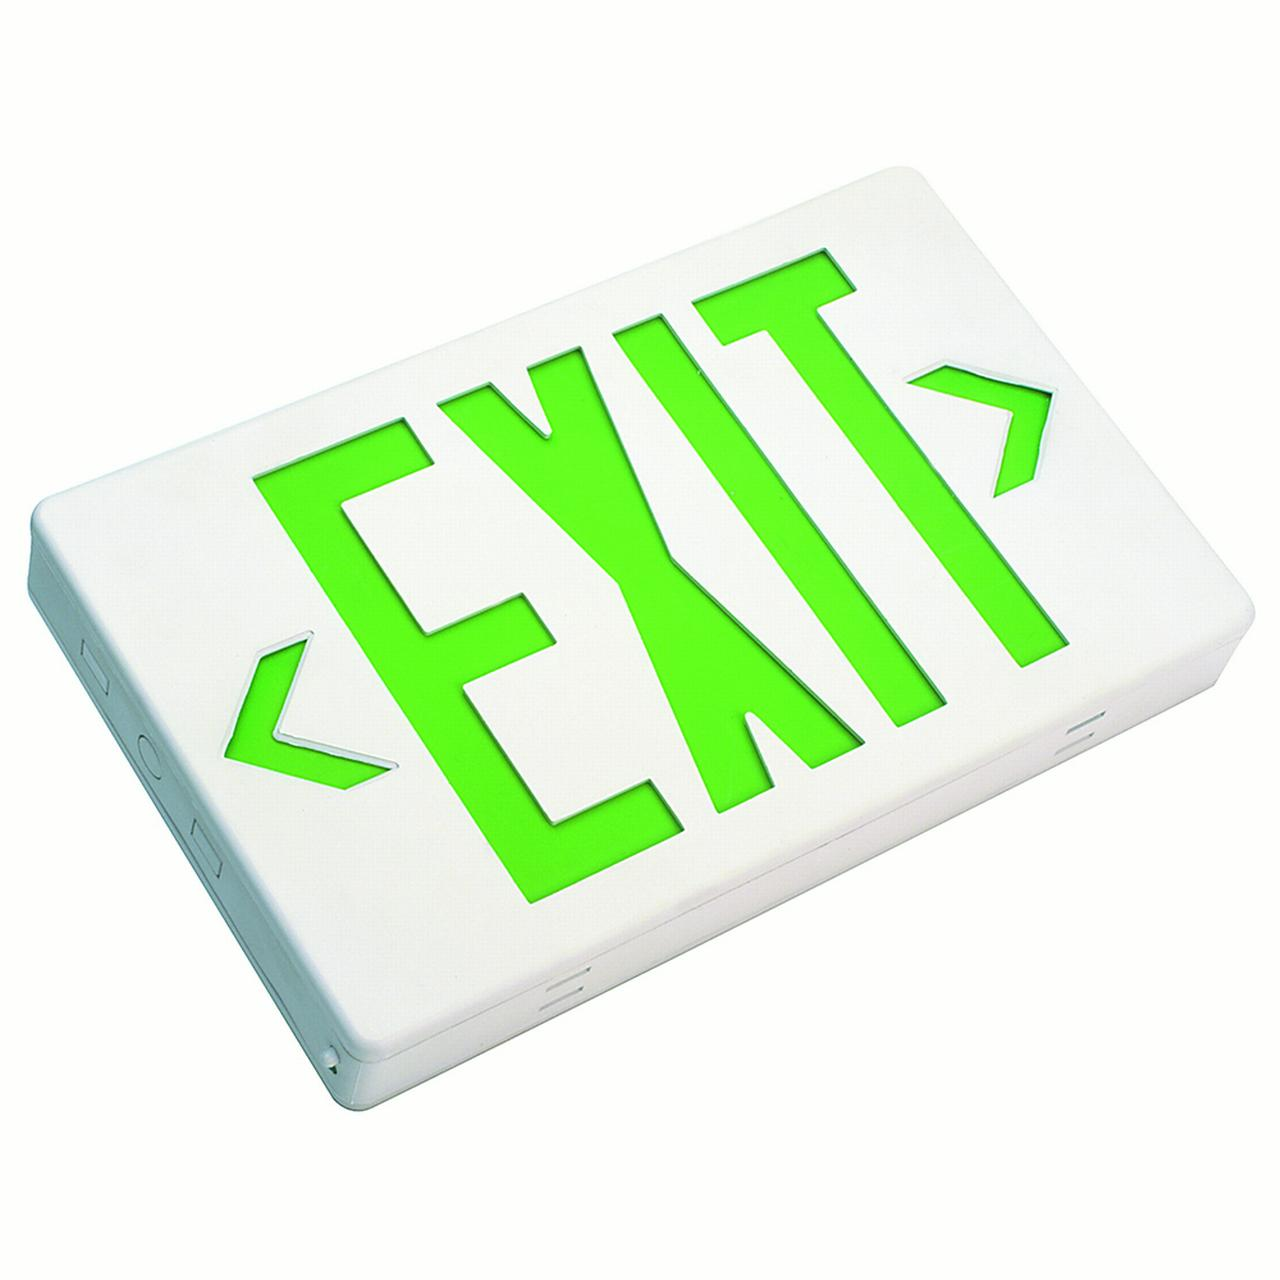 NICOR Low Profile LED Exit Sign with Automatic Low-Voltage Disconnect w/ Green